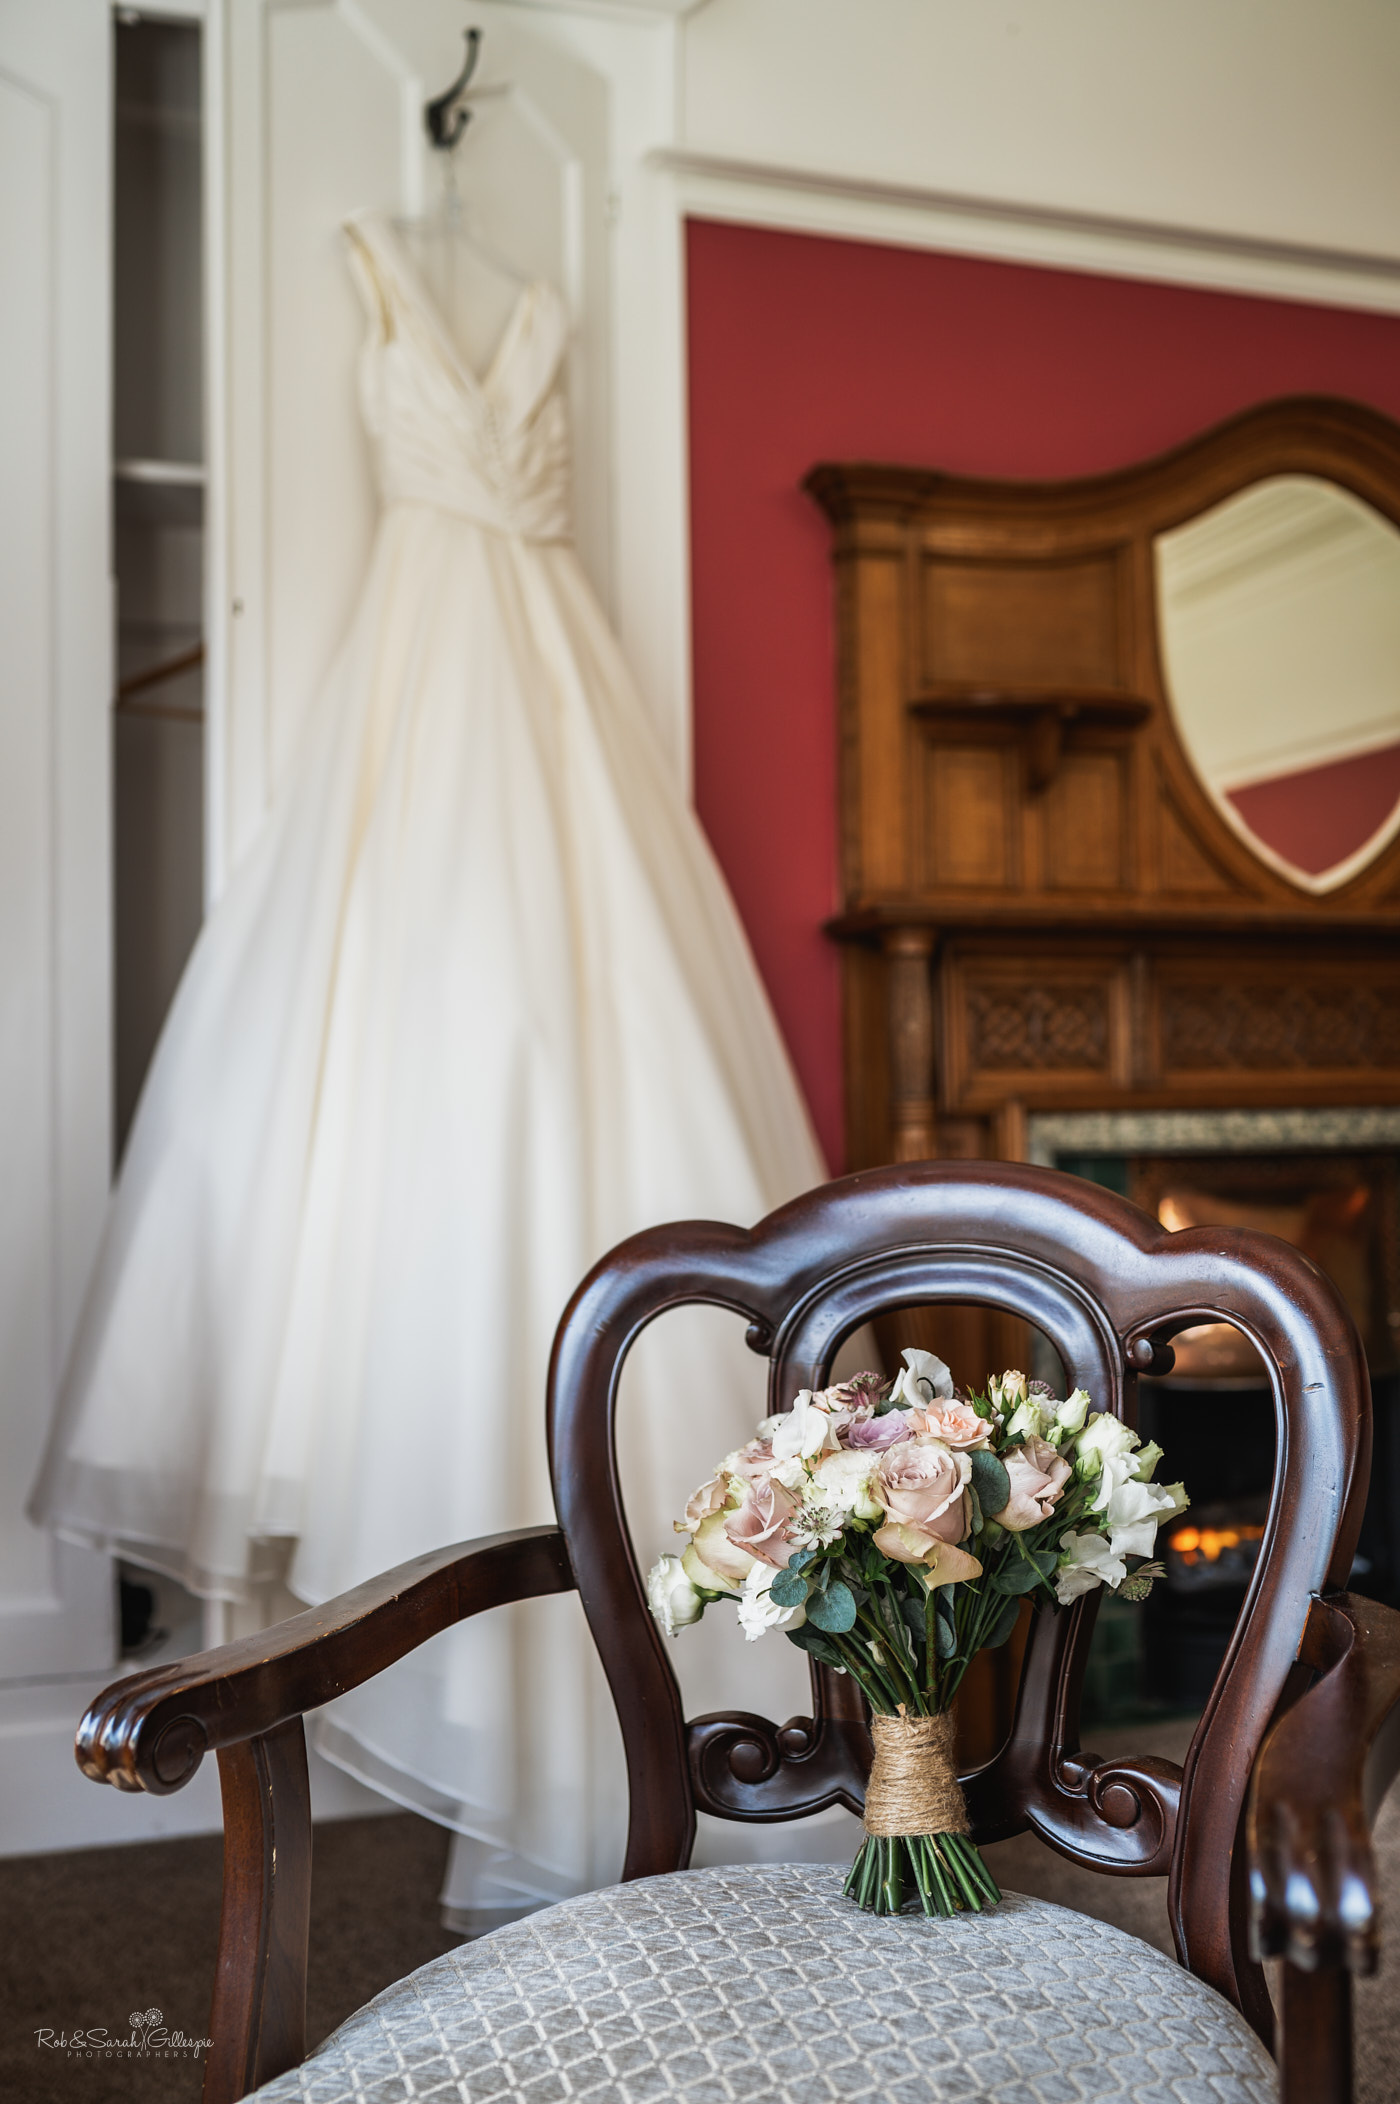 Wedding bouquet with wedding dress behind